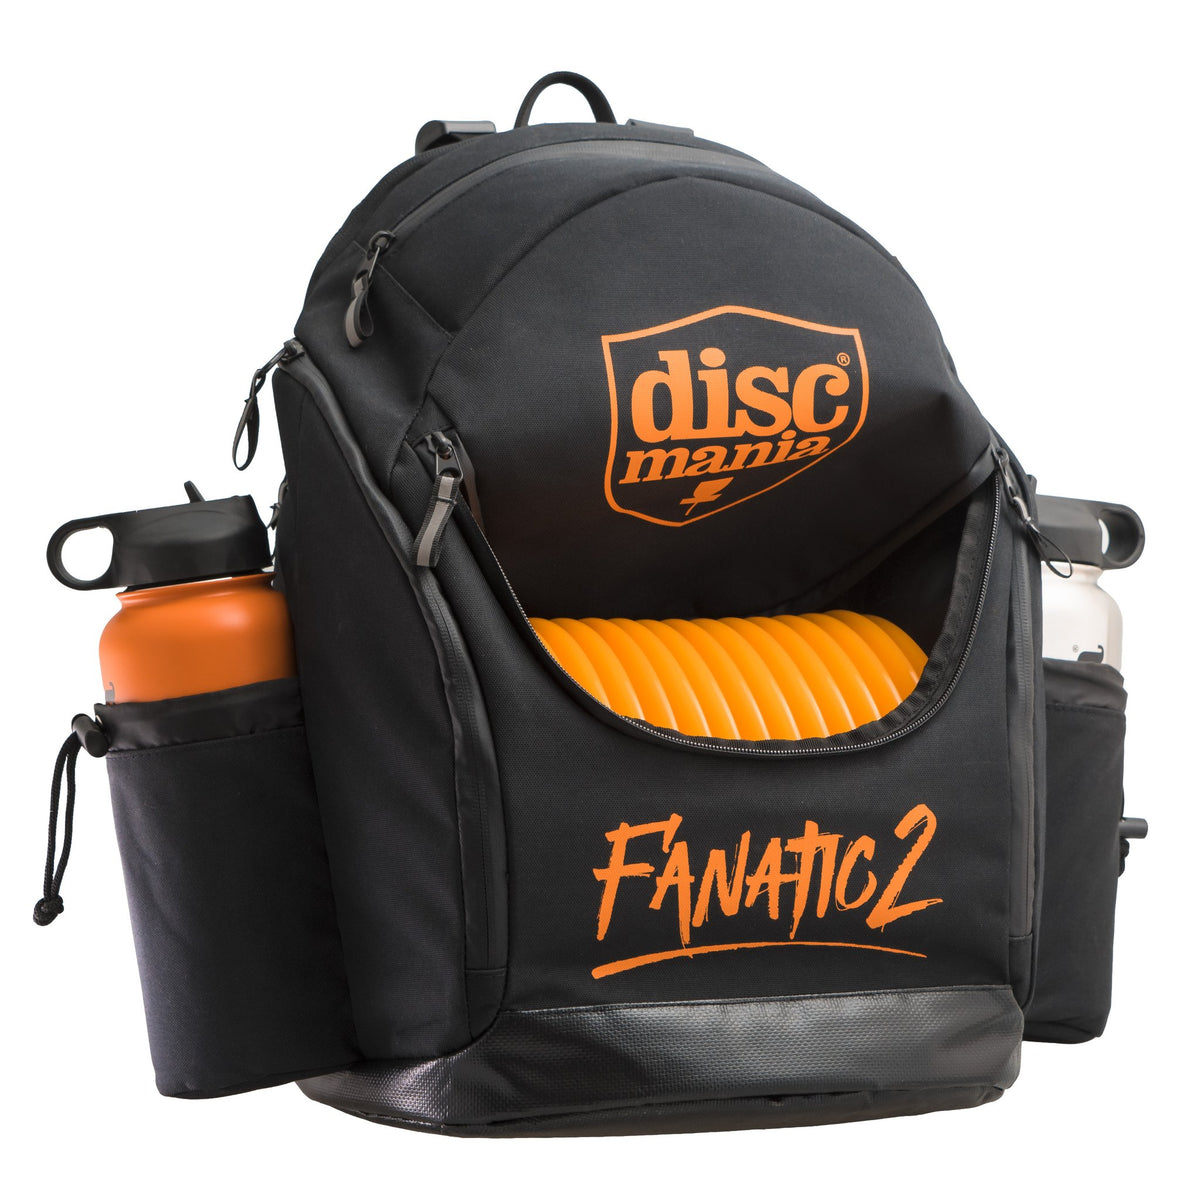 Discmania Fanatic 2 Backpack Bag